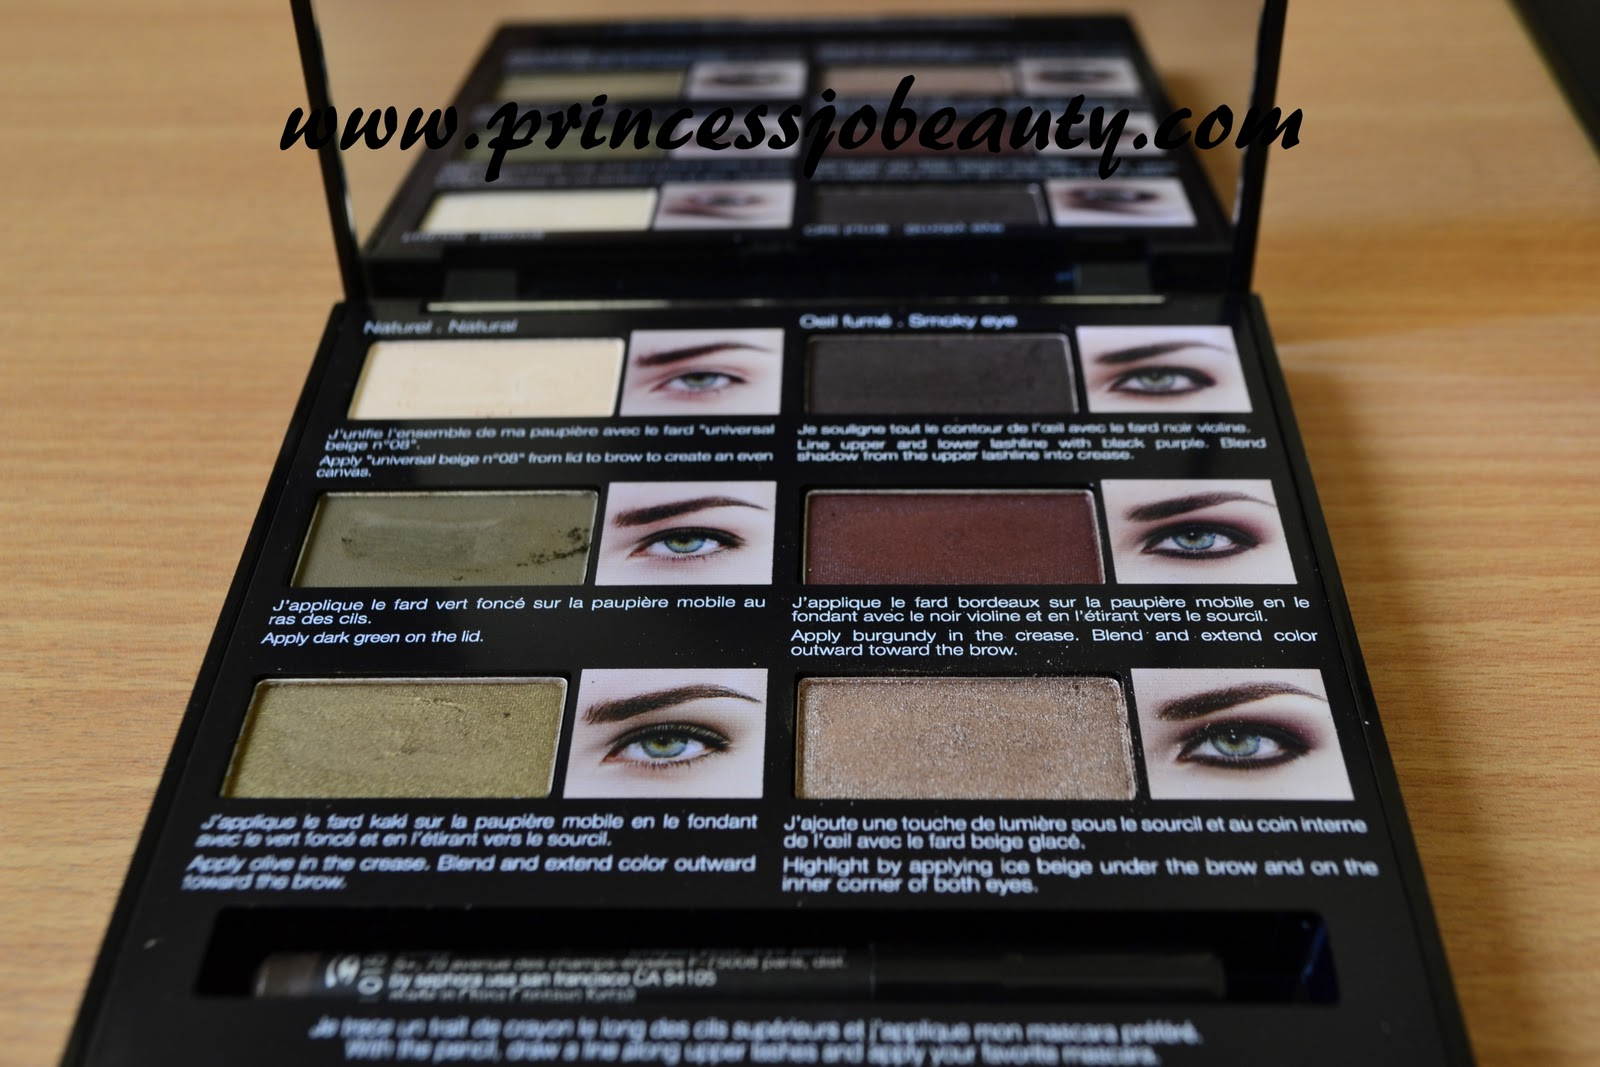 Pro Smoky Liner #24 by Sephora Collection #20